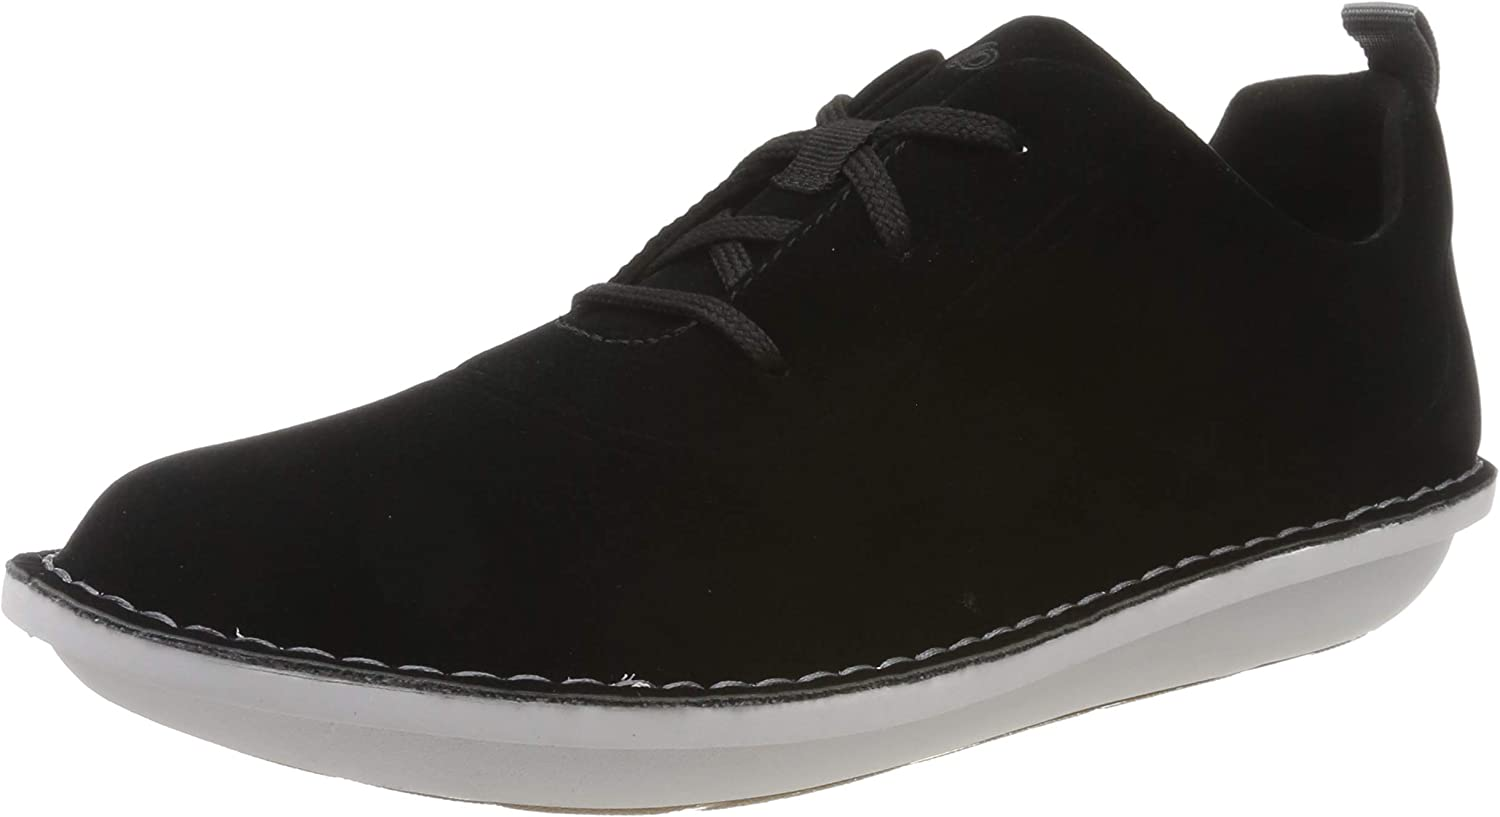 Clarks Step Weltfree, Zapatillas para Mujer